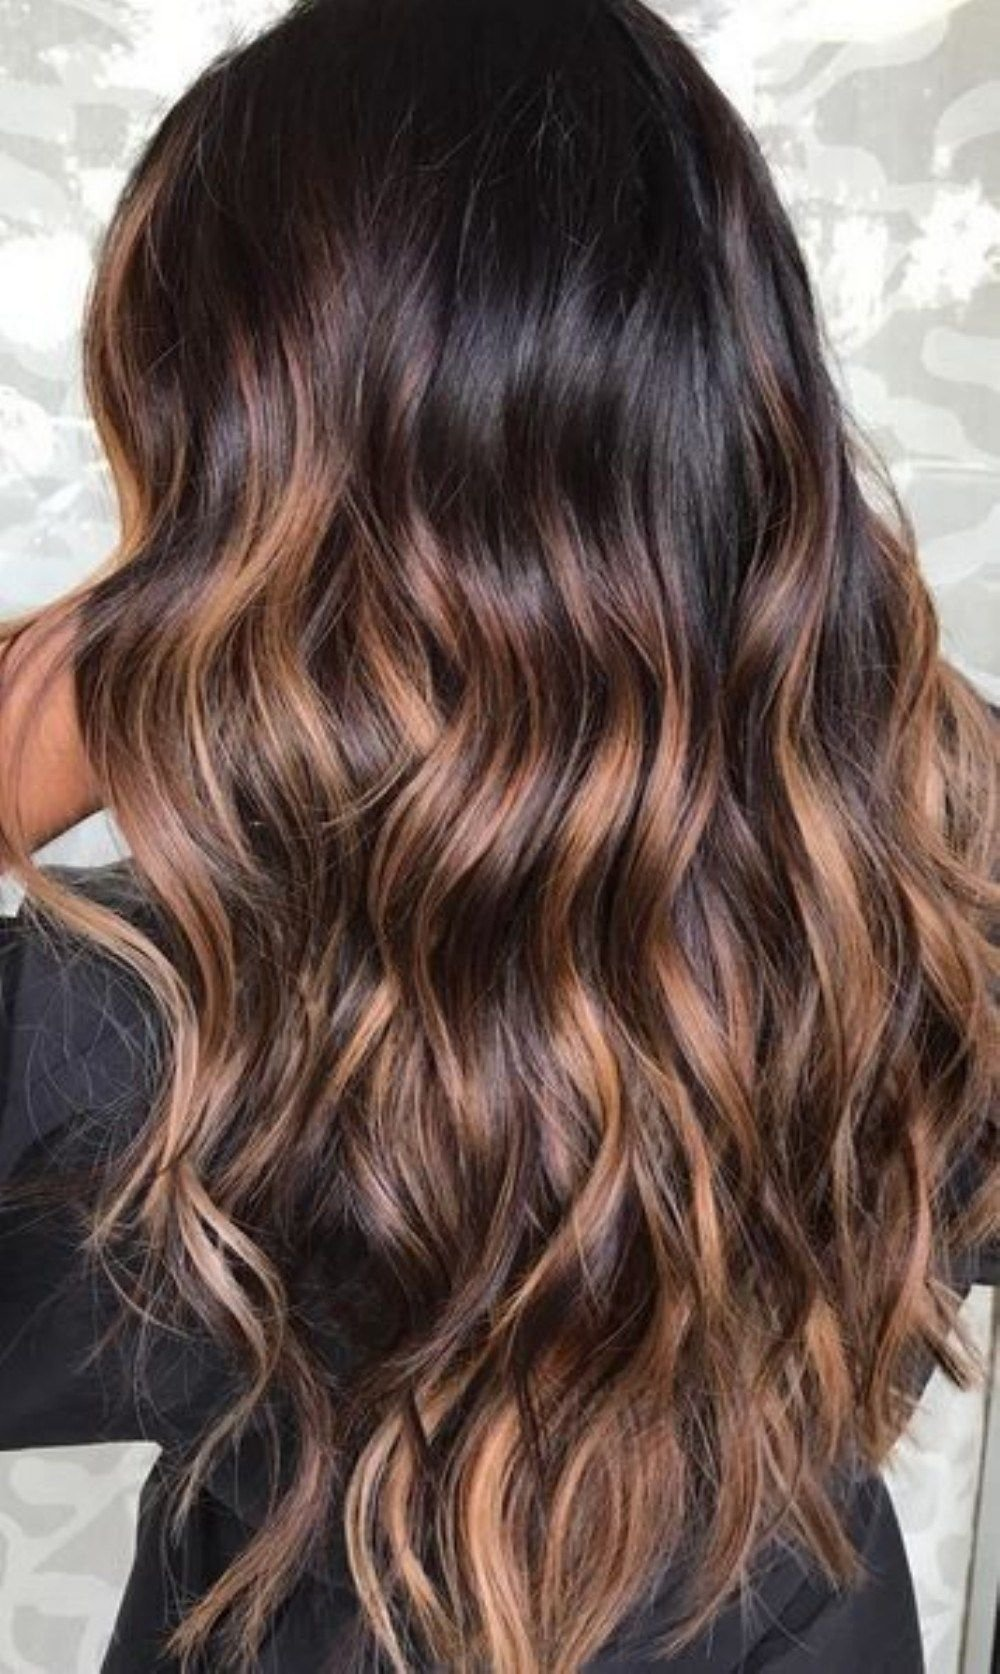 10 Stunning Hair Color Ideas For Brunettes top brunette hair color ideas to try 2017 16 hair and beauty